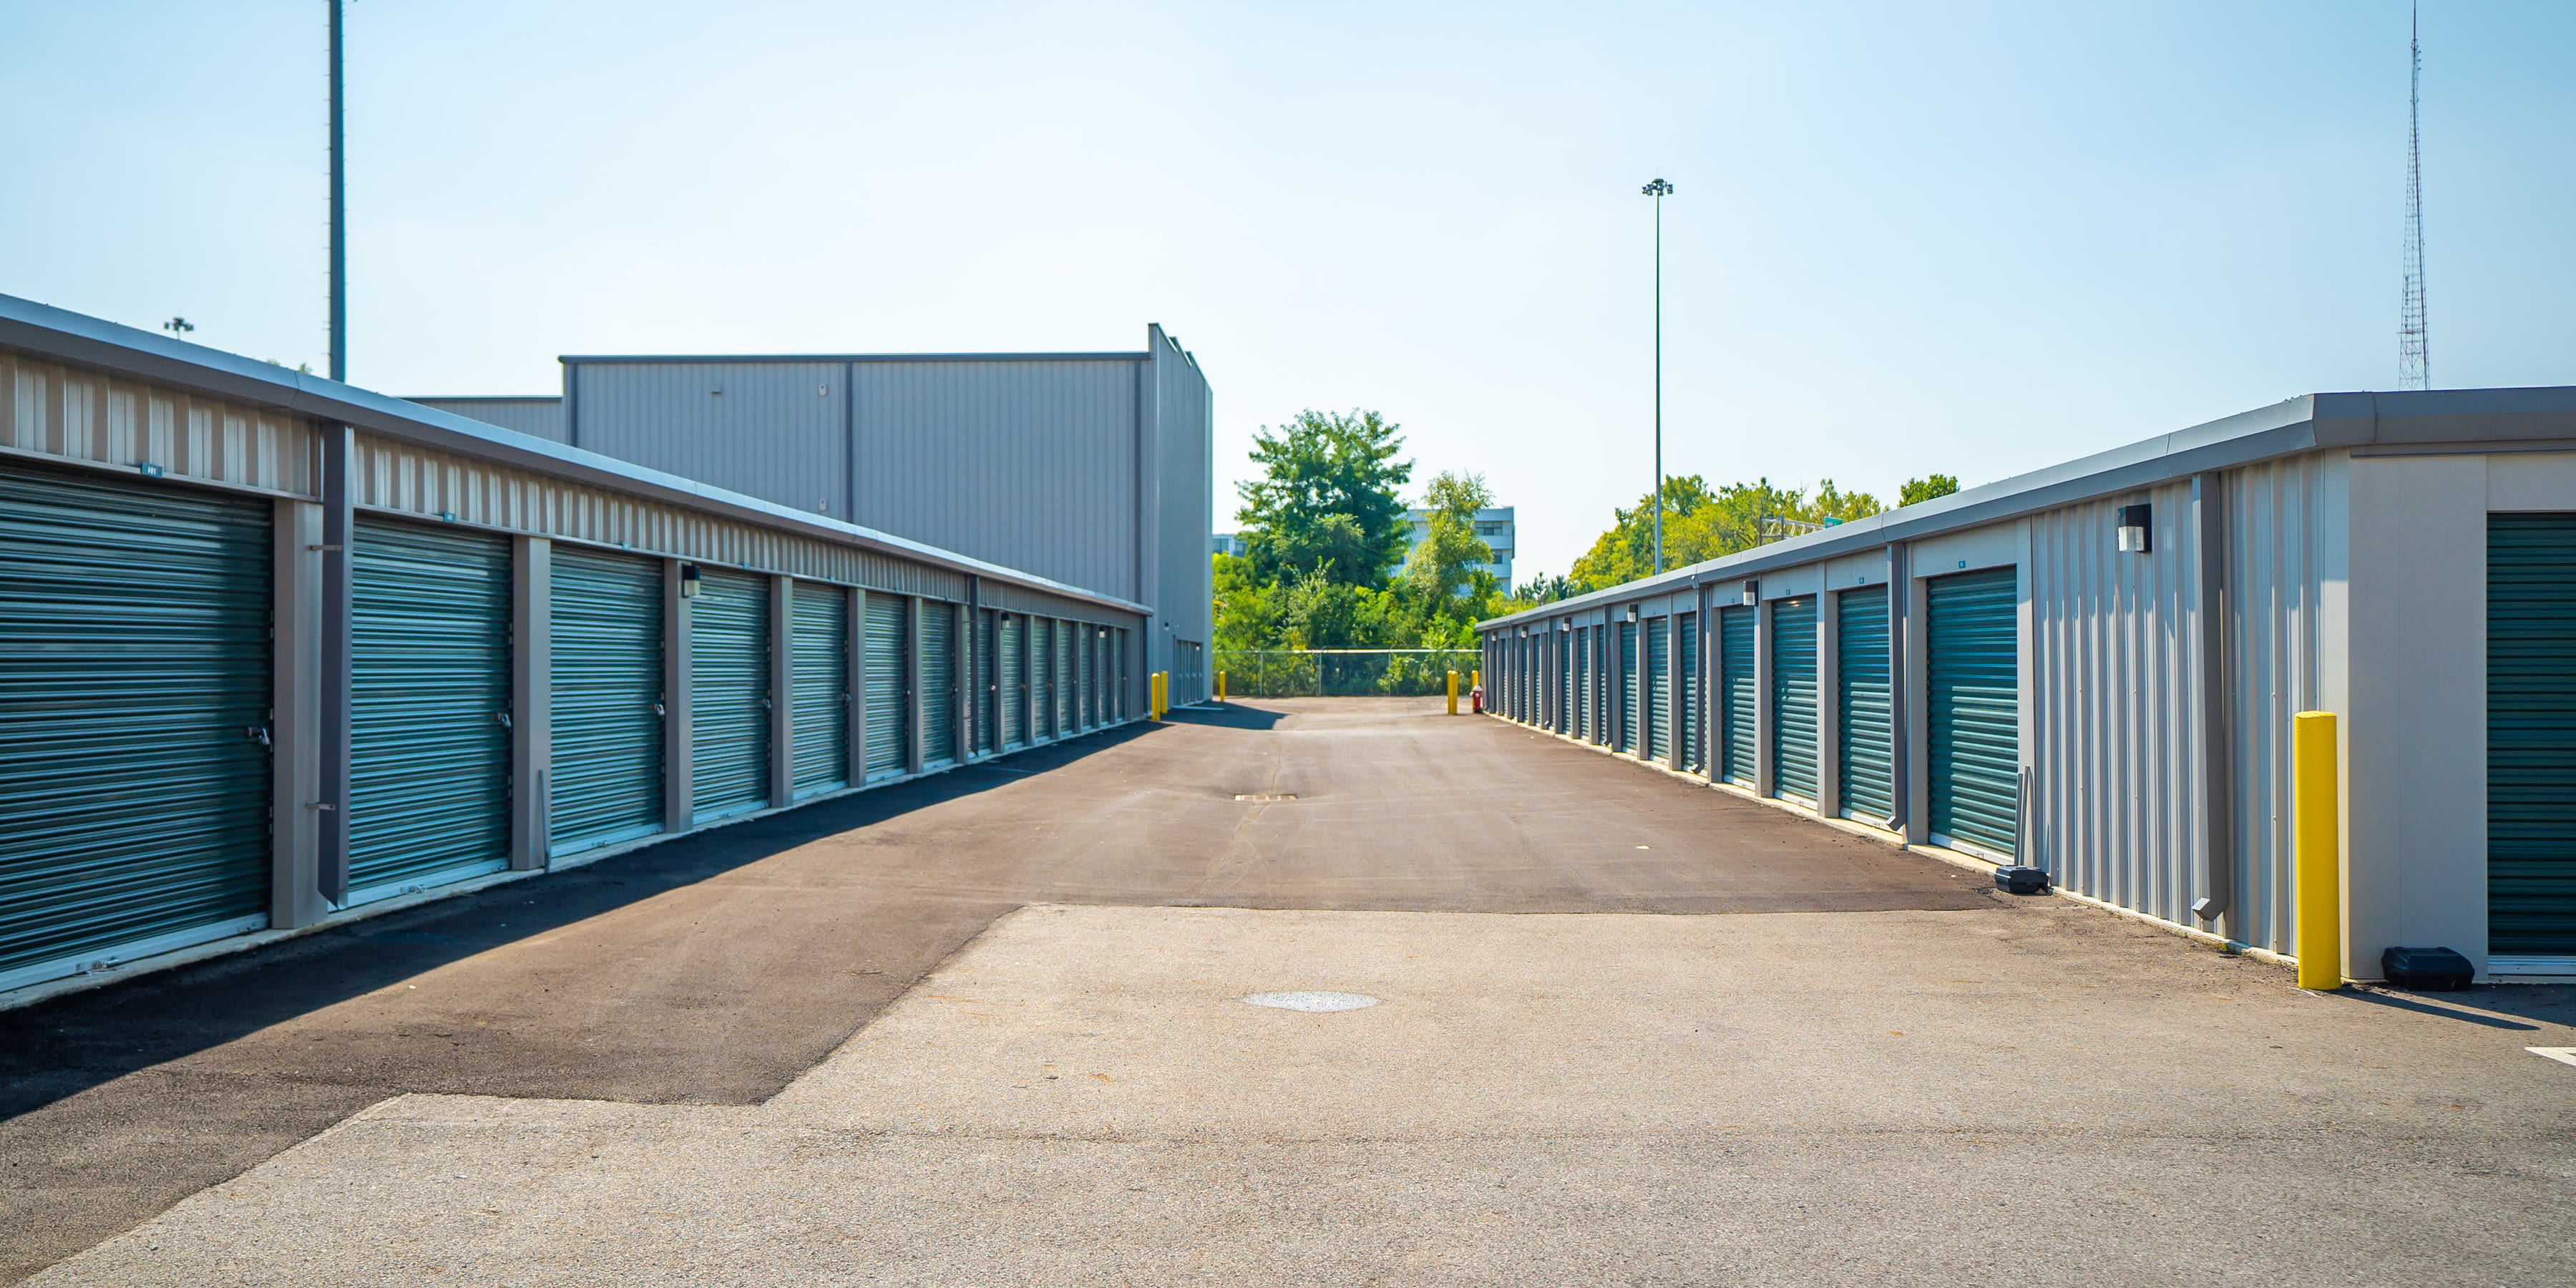 Car storage at Short North Storage is available